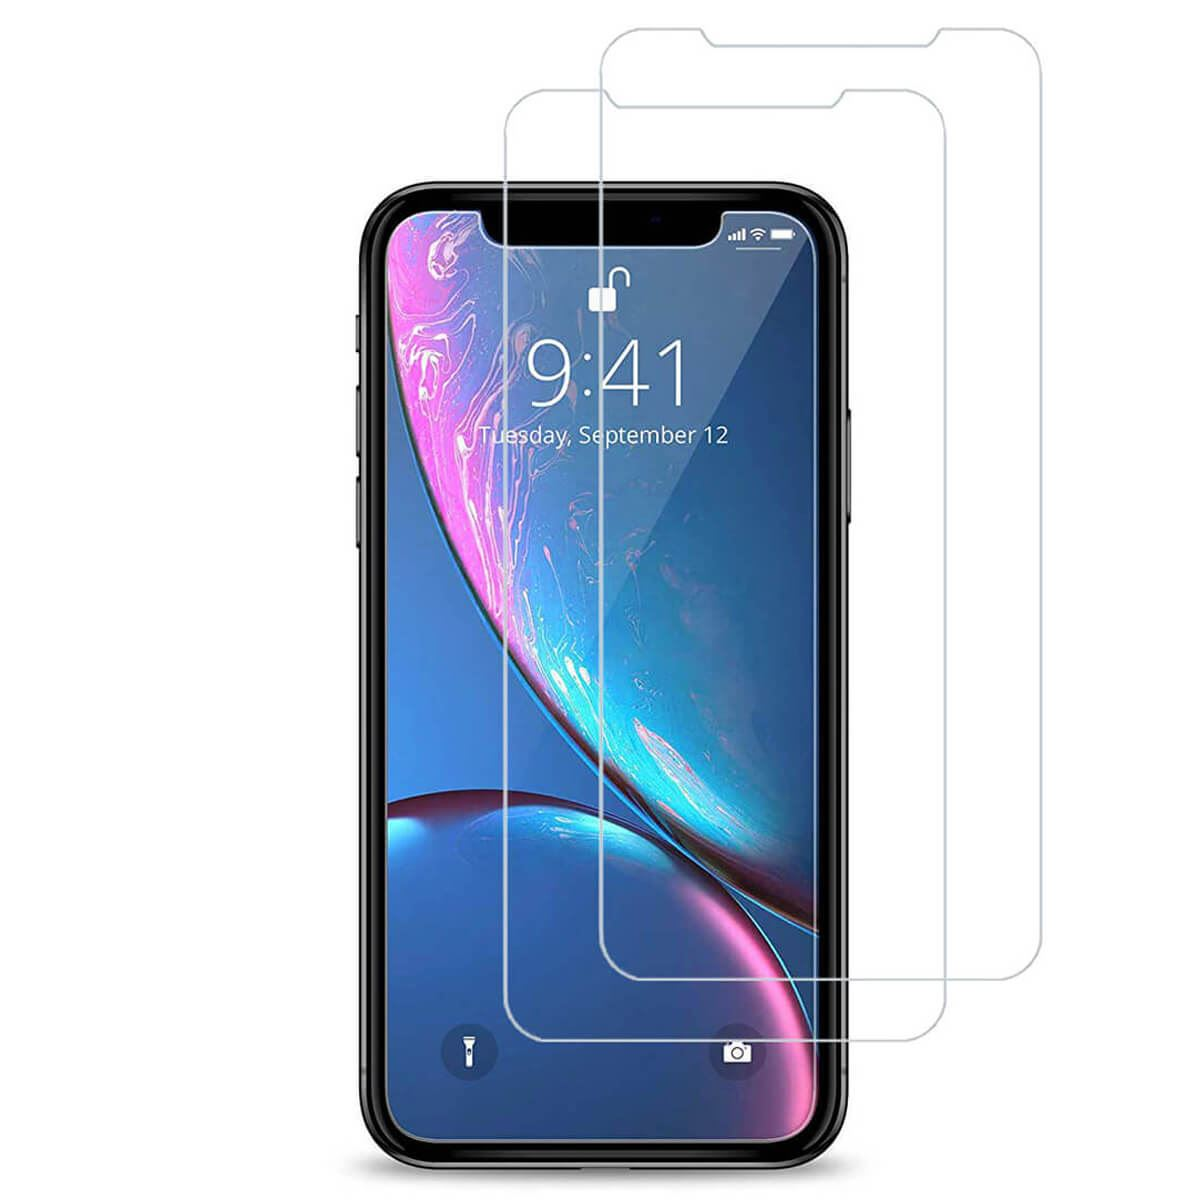 Tempered-Glass-Film-Screen-Protector-For-iPhone-12-Pro-Max-Mini-XR-XS-Max-8-7-6s thumbnail 40